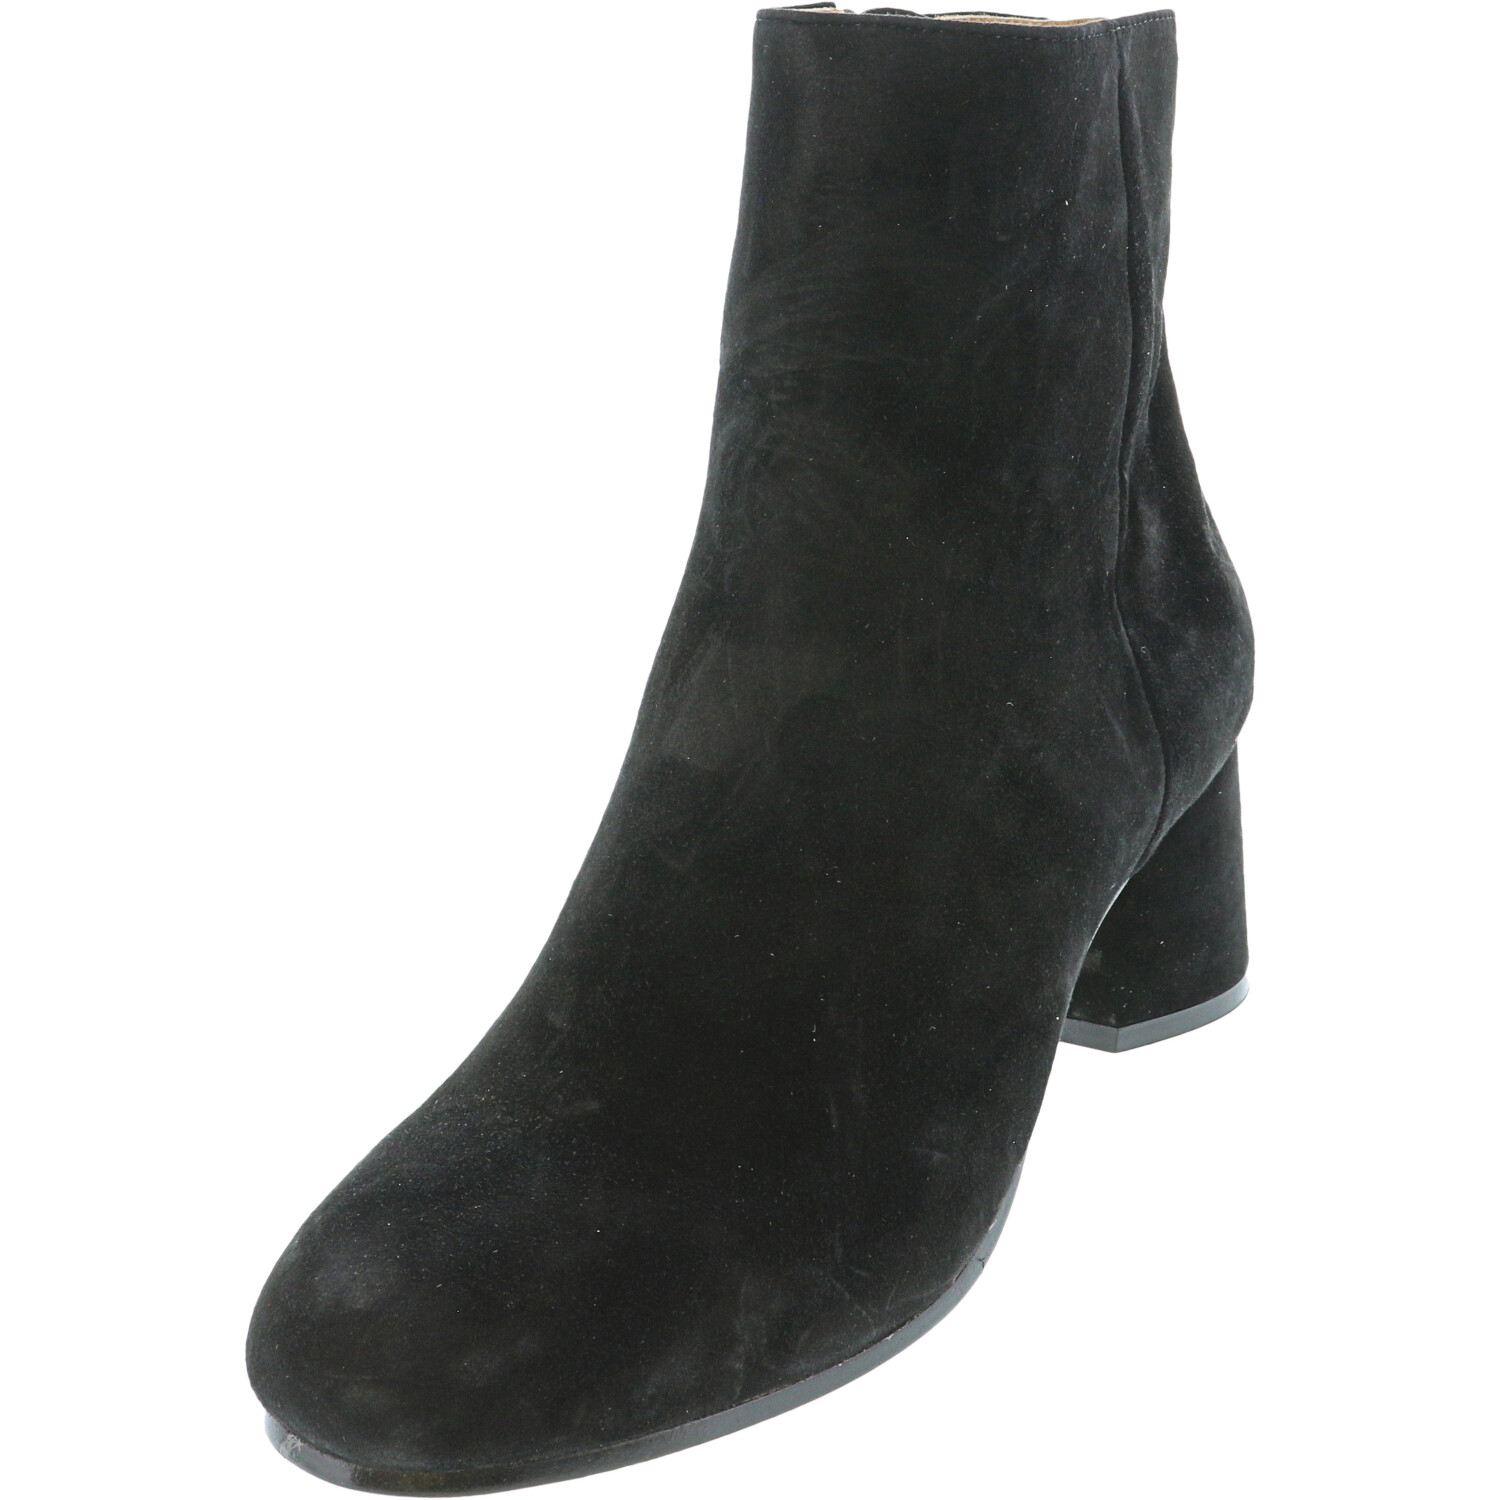 Joie Women's Rarly Black Ankle-High Leather Boot - 6M